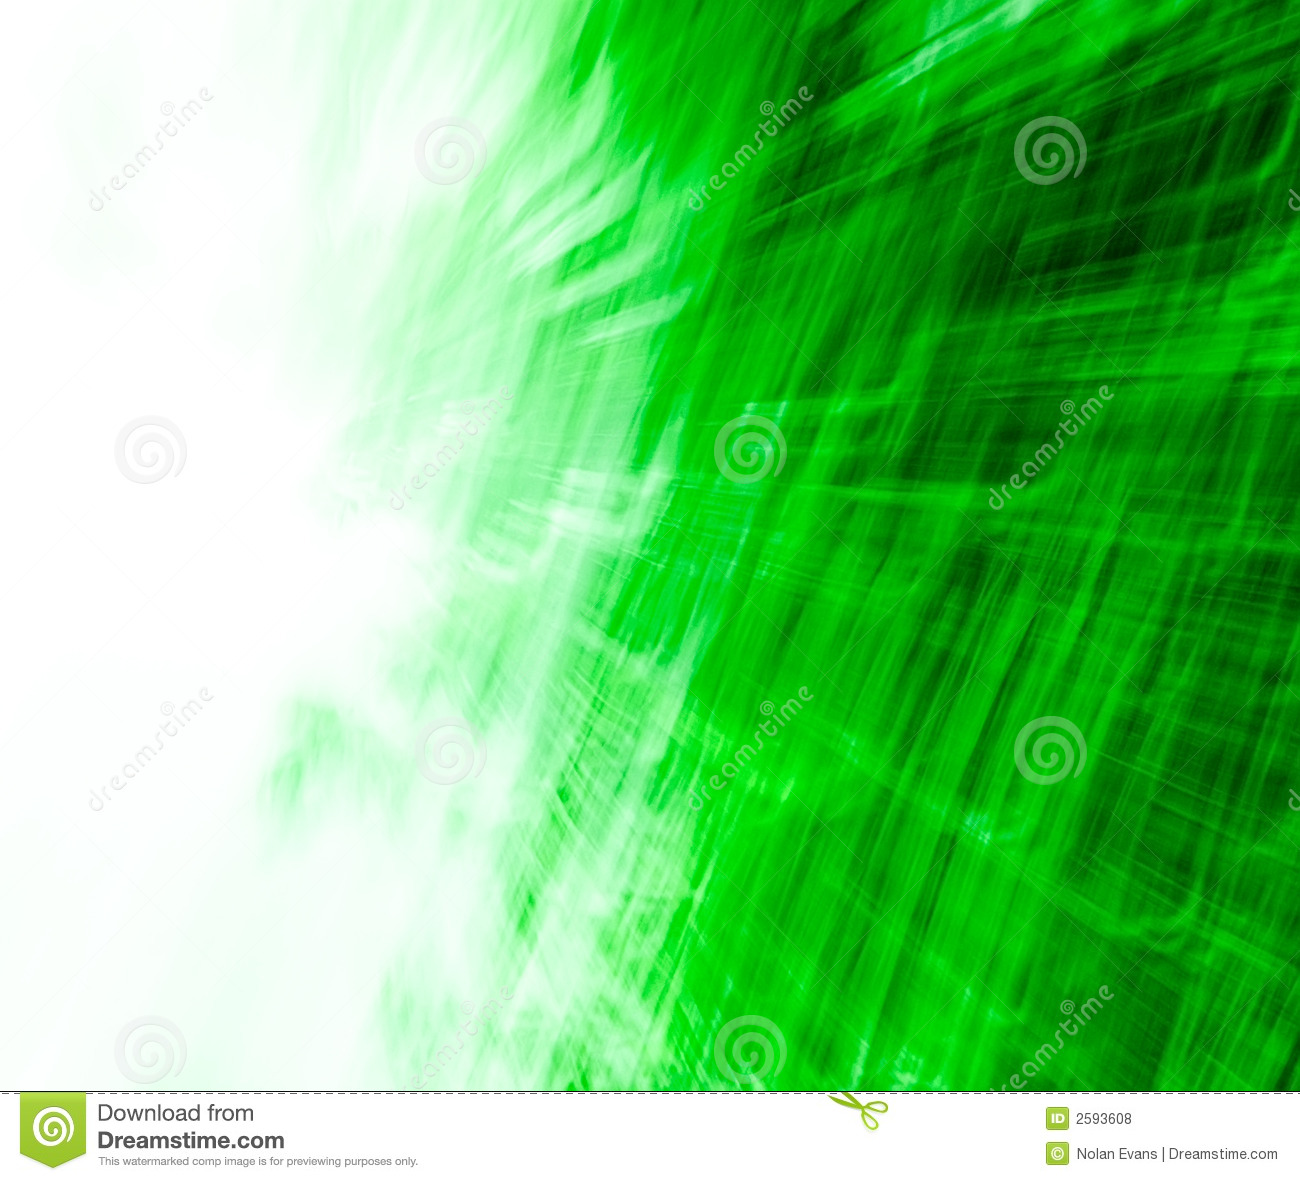 Green/White Abstract Texture 0 Stock Photo